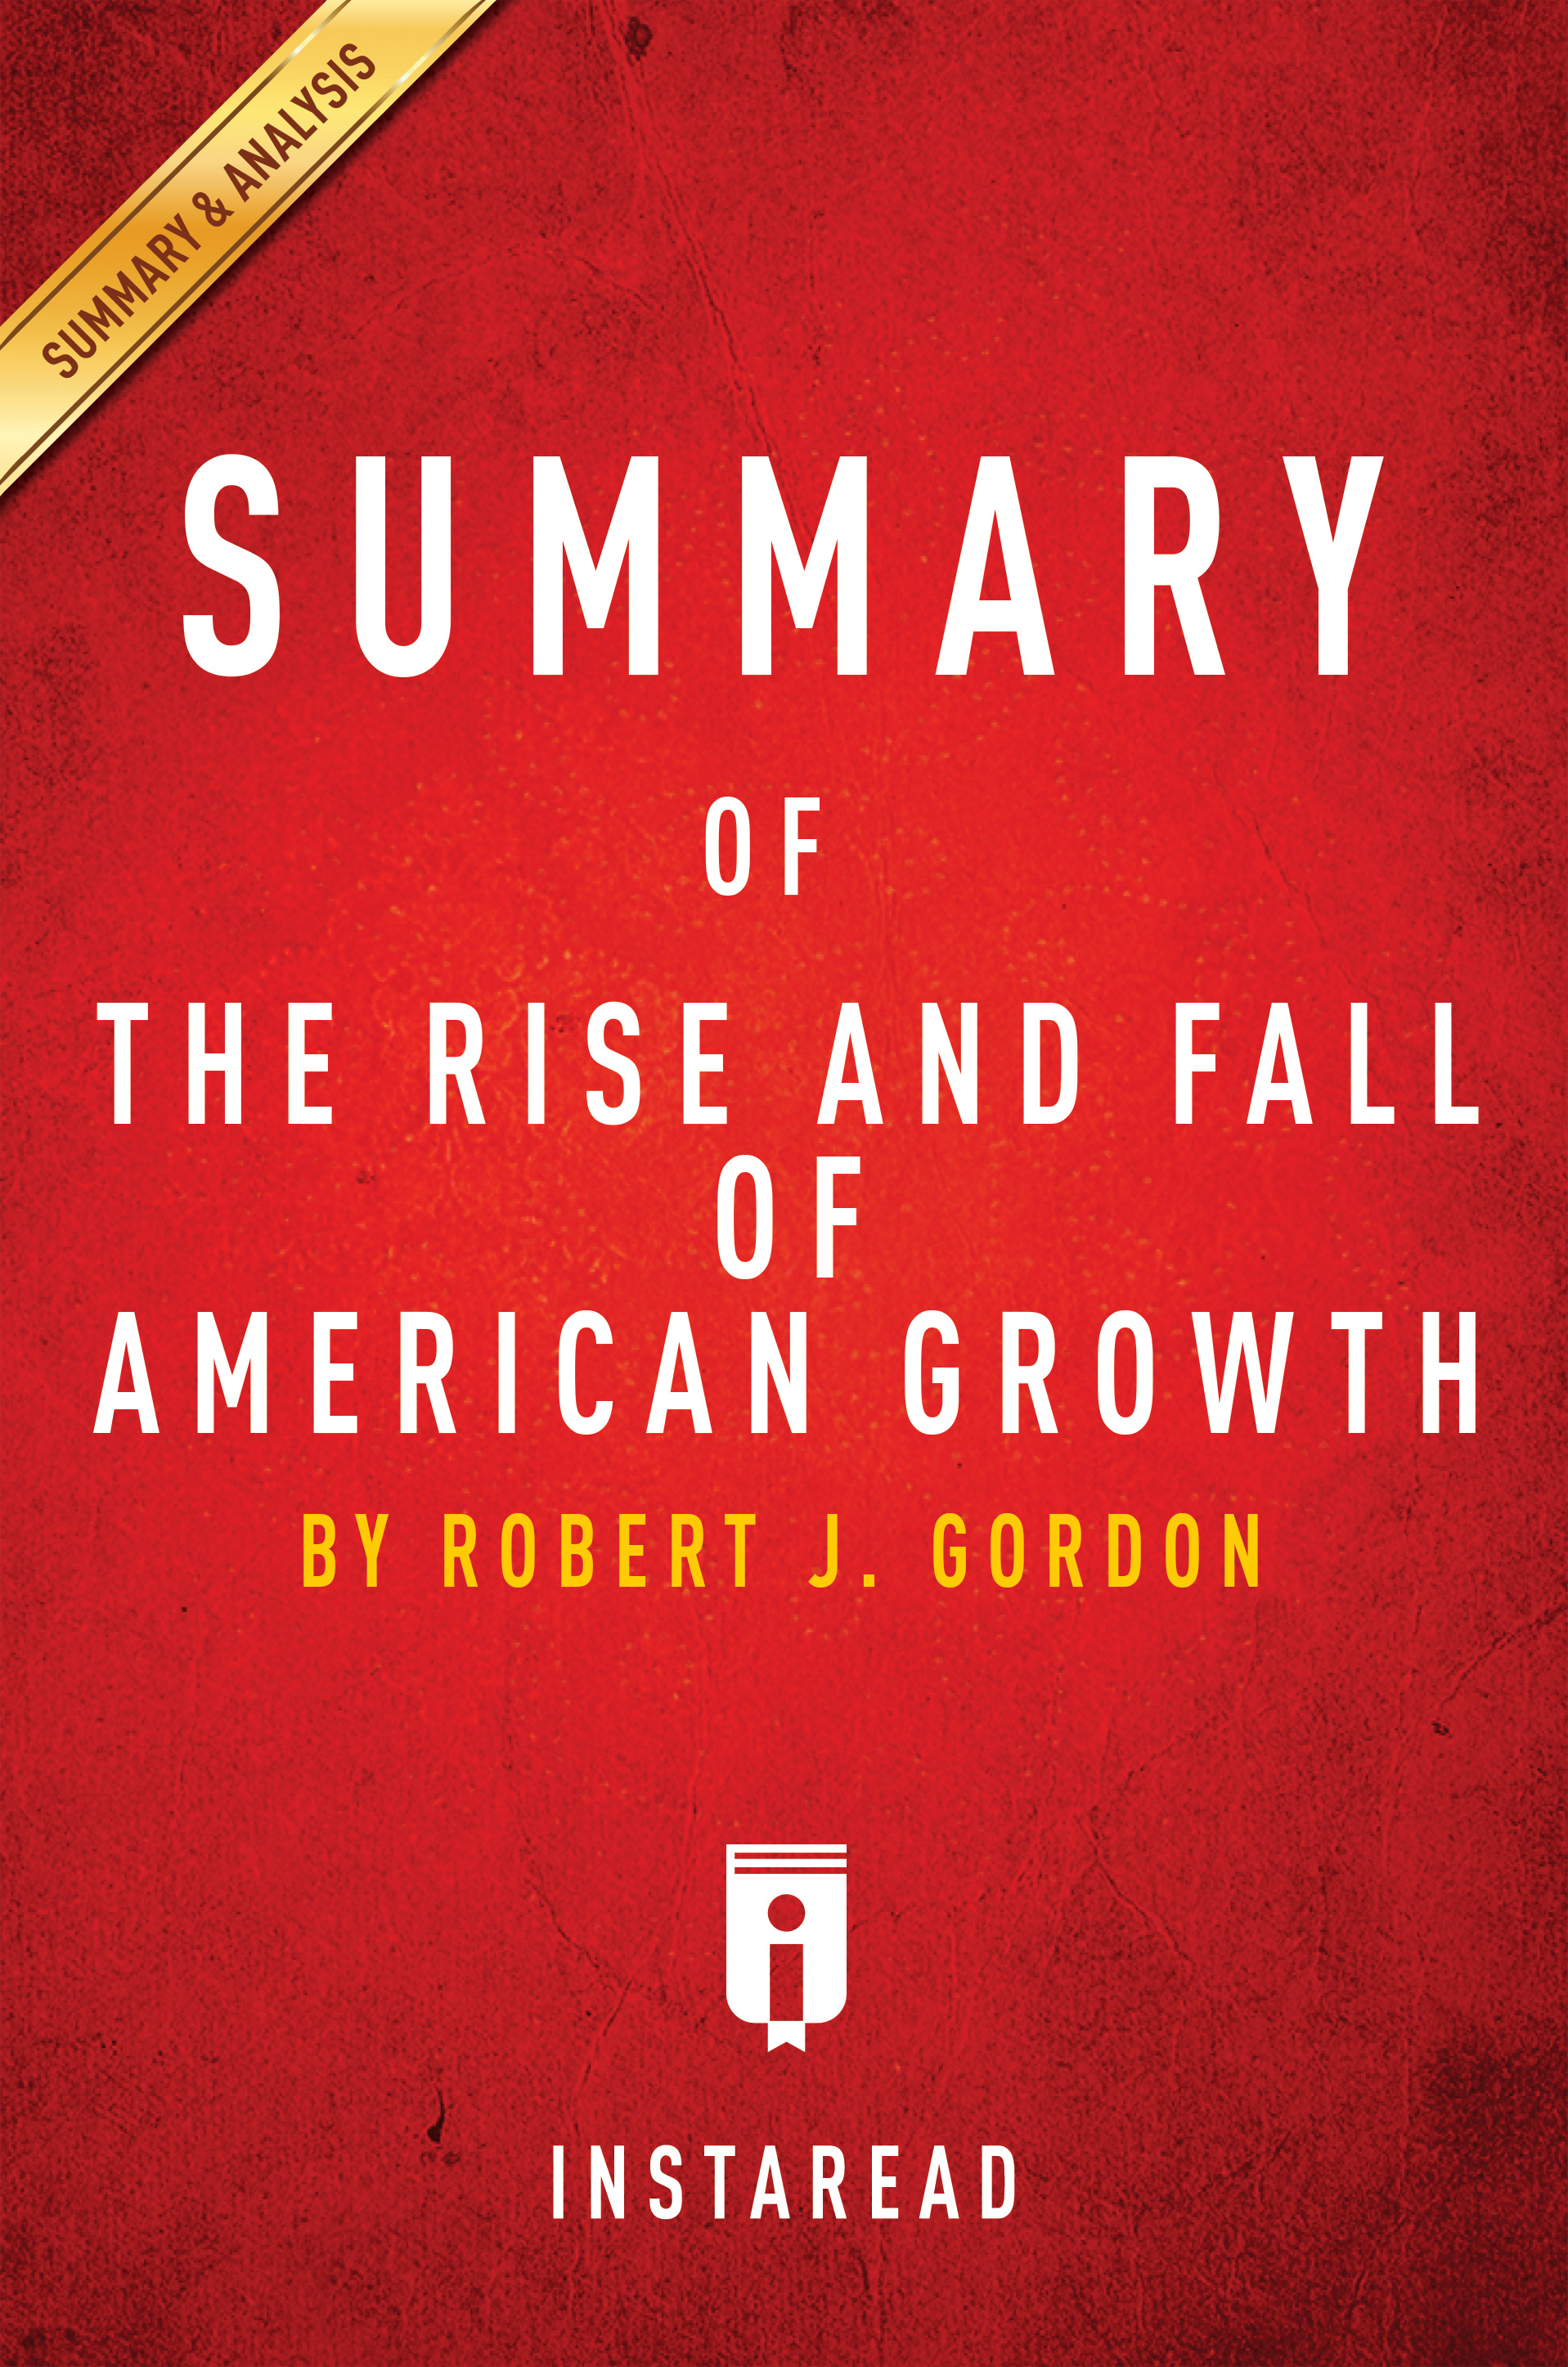 Download Ebook Summary of The Rise and Fall of American Growth by . Instaread Pdf